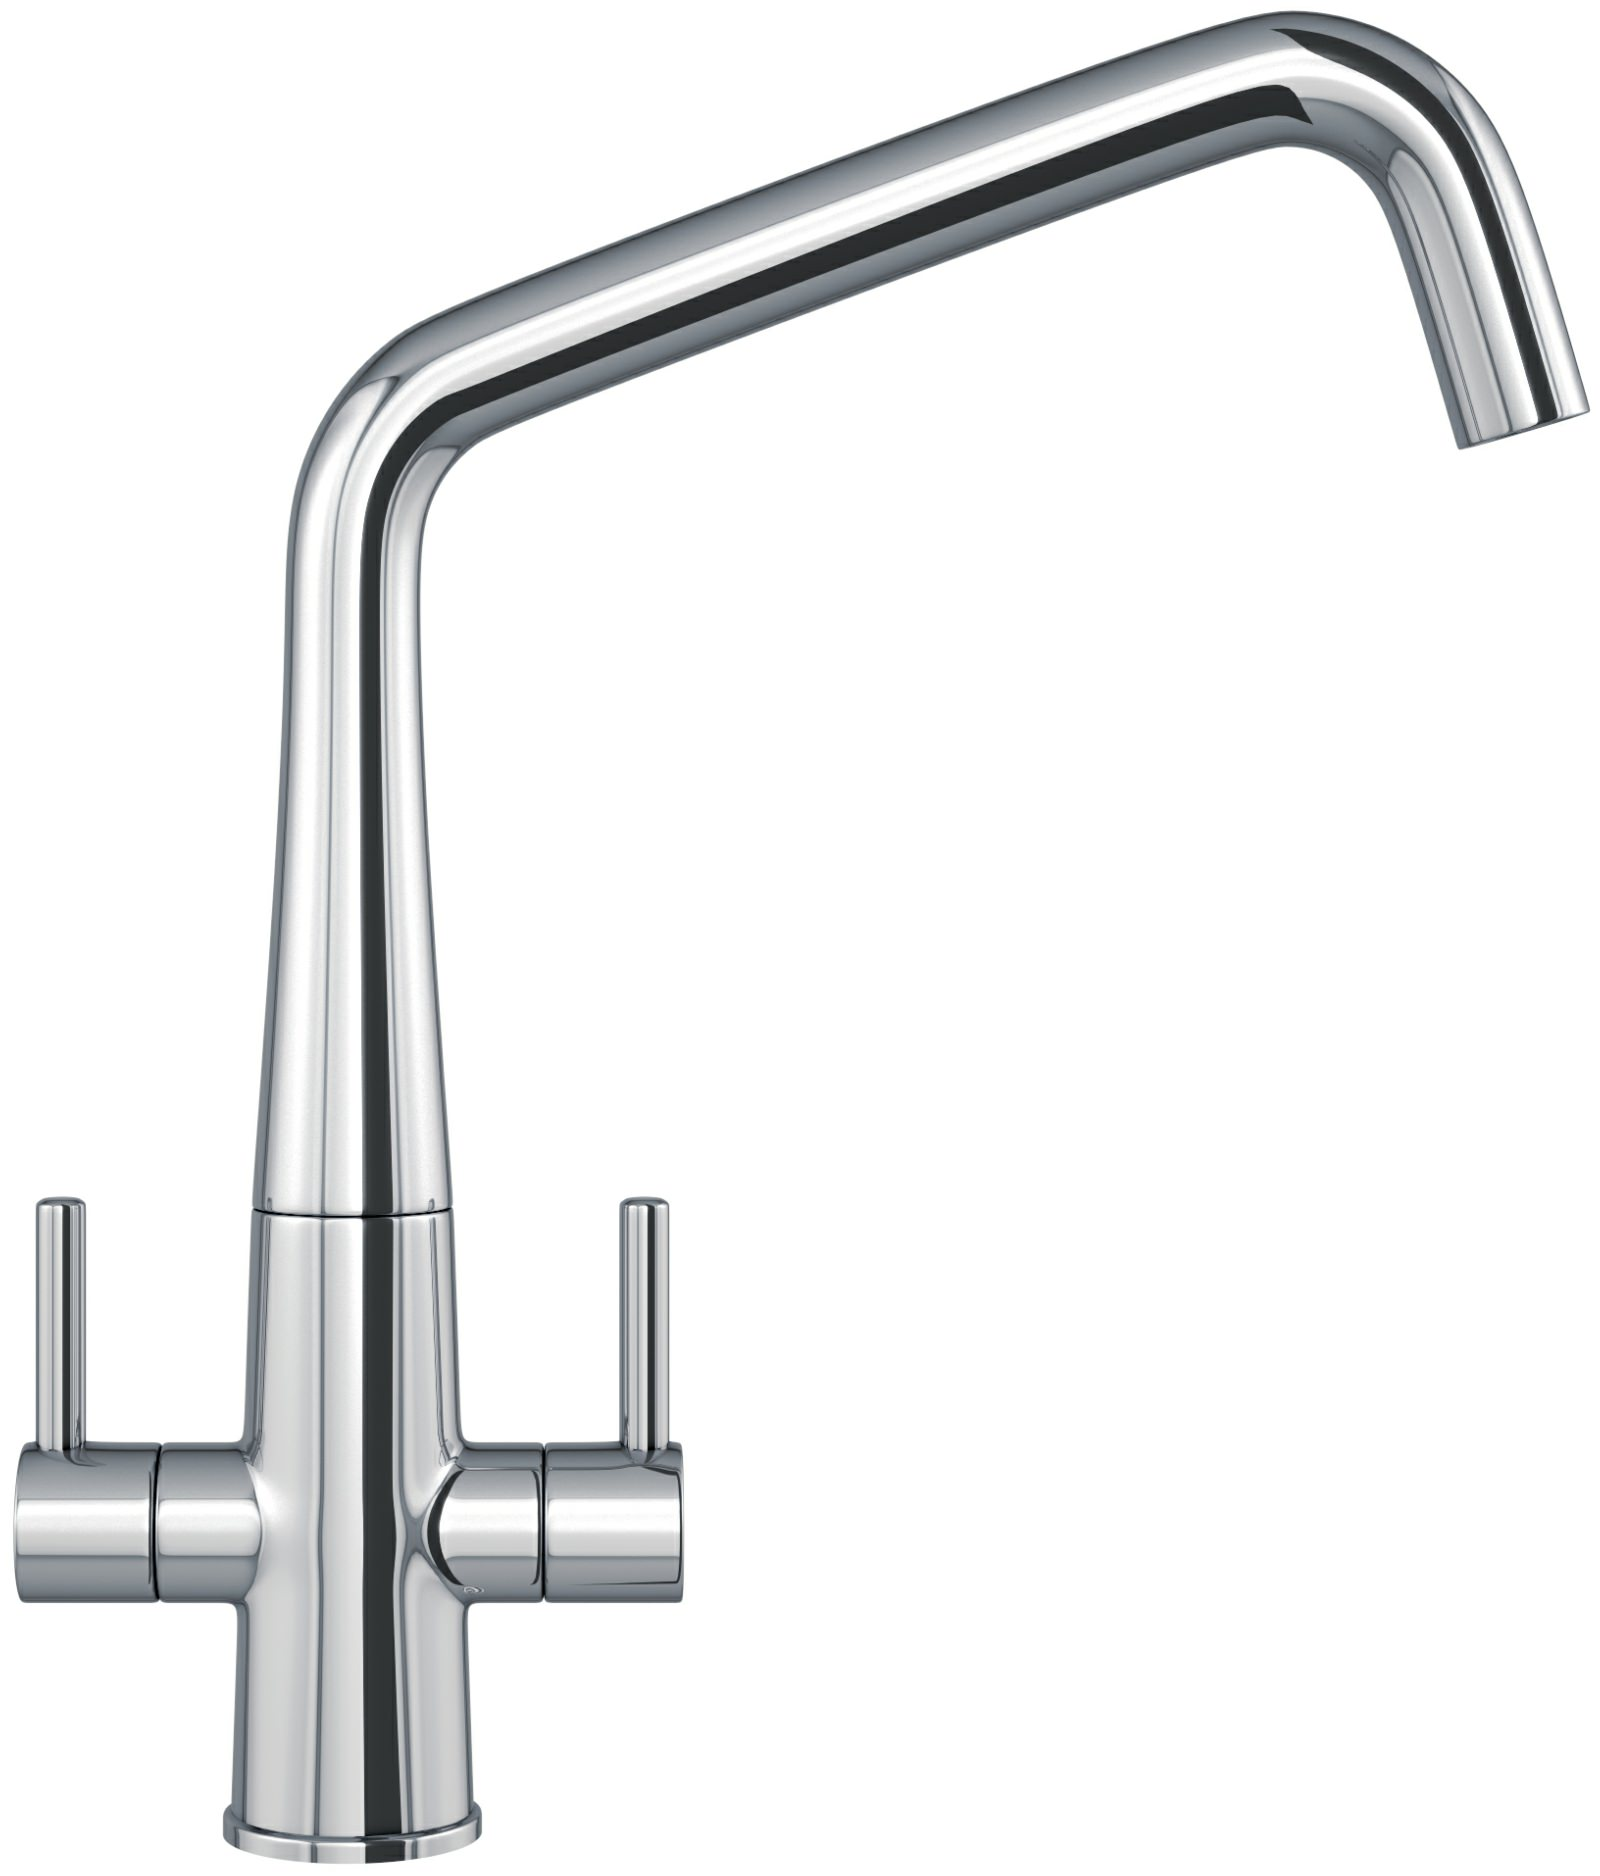 Franke Cristallo Chrome Kitchen Sink Mixer Tap